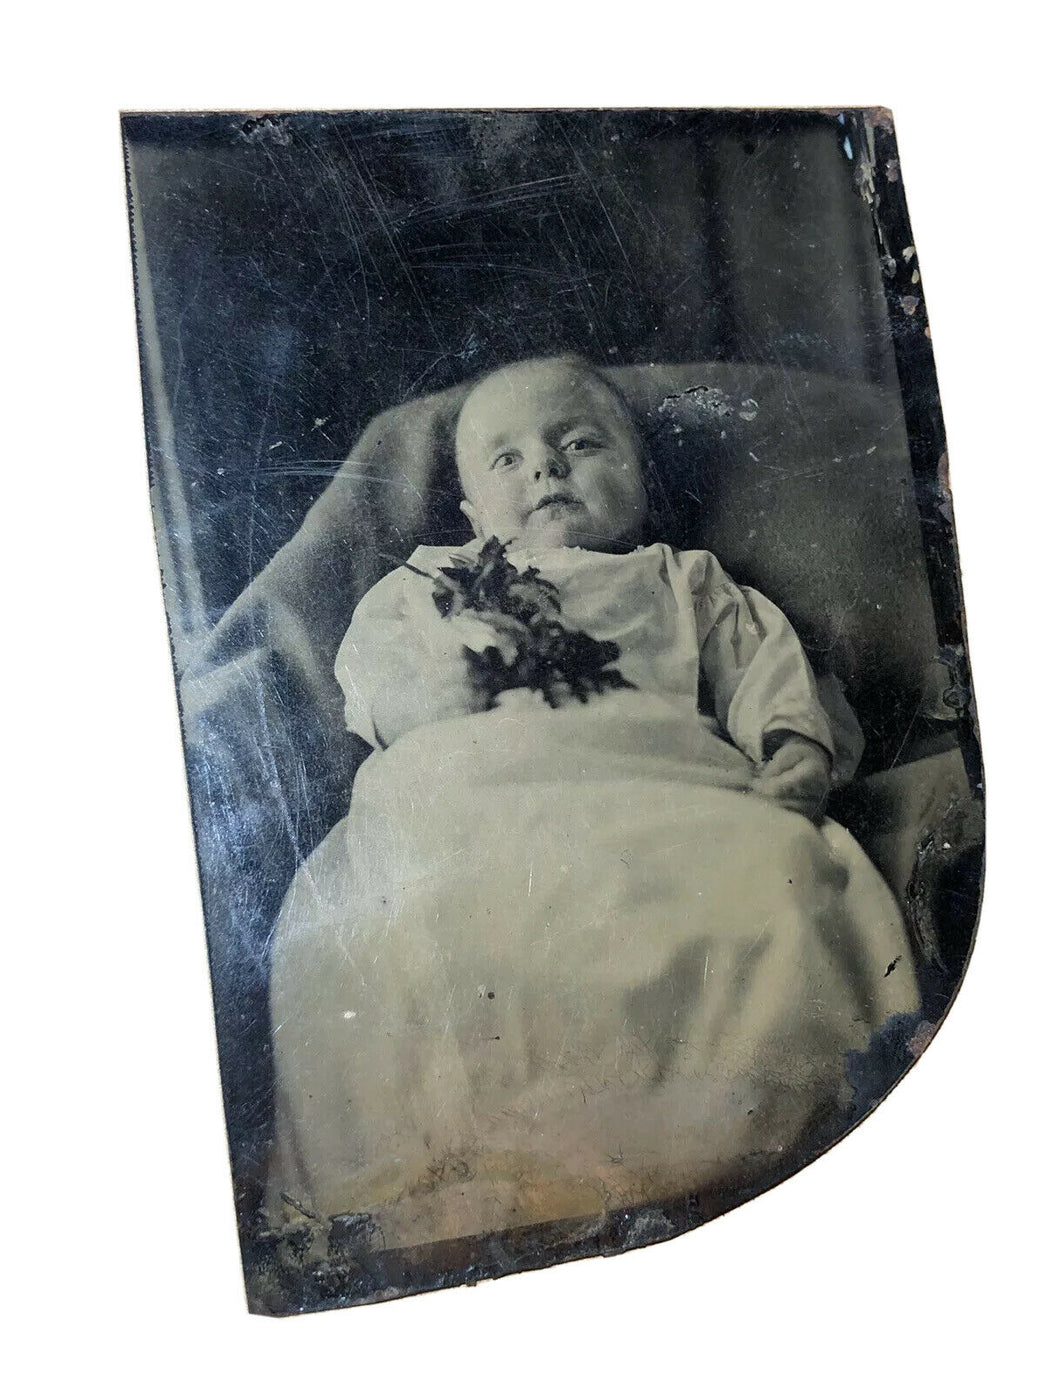 post mortem tintype child holding flowers / open eyes 1860s c1870